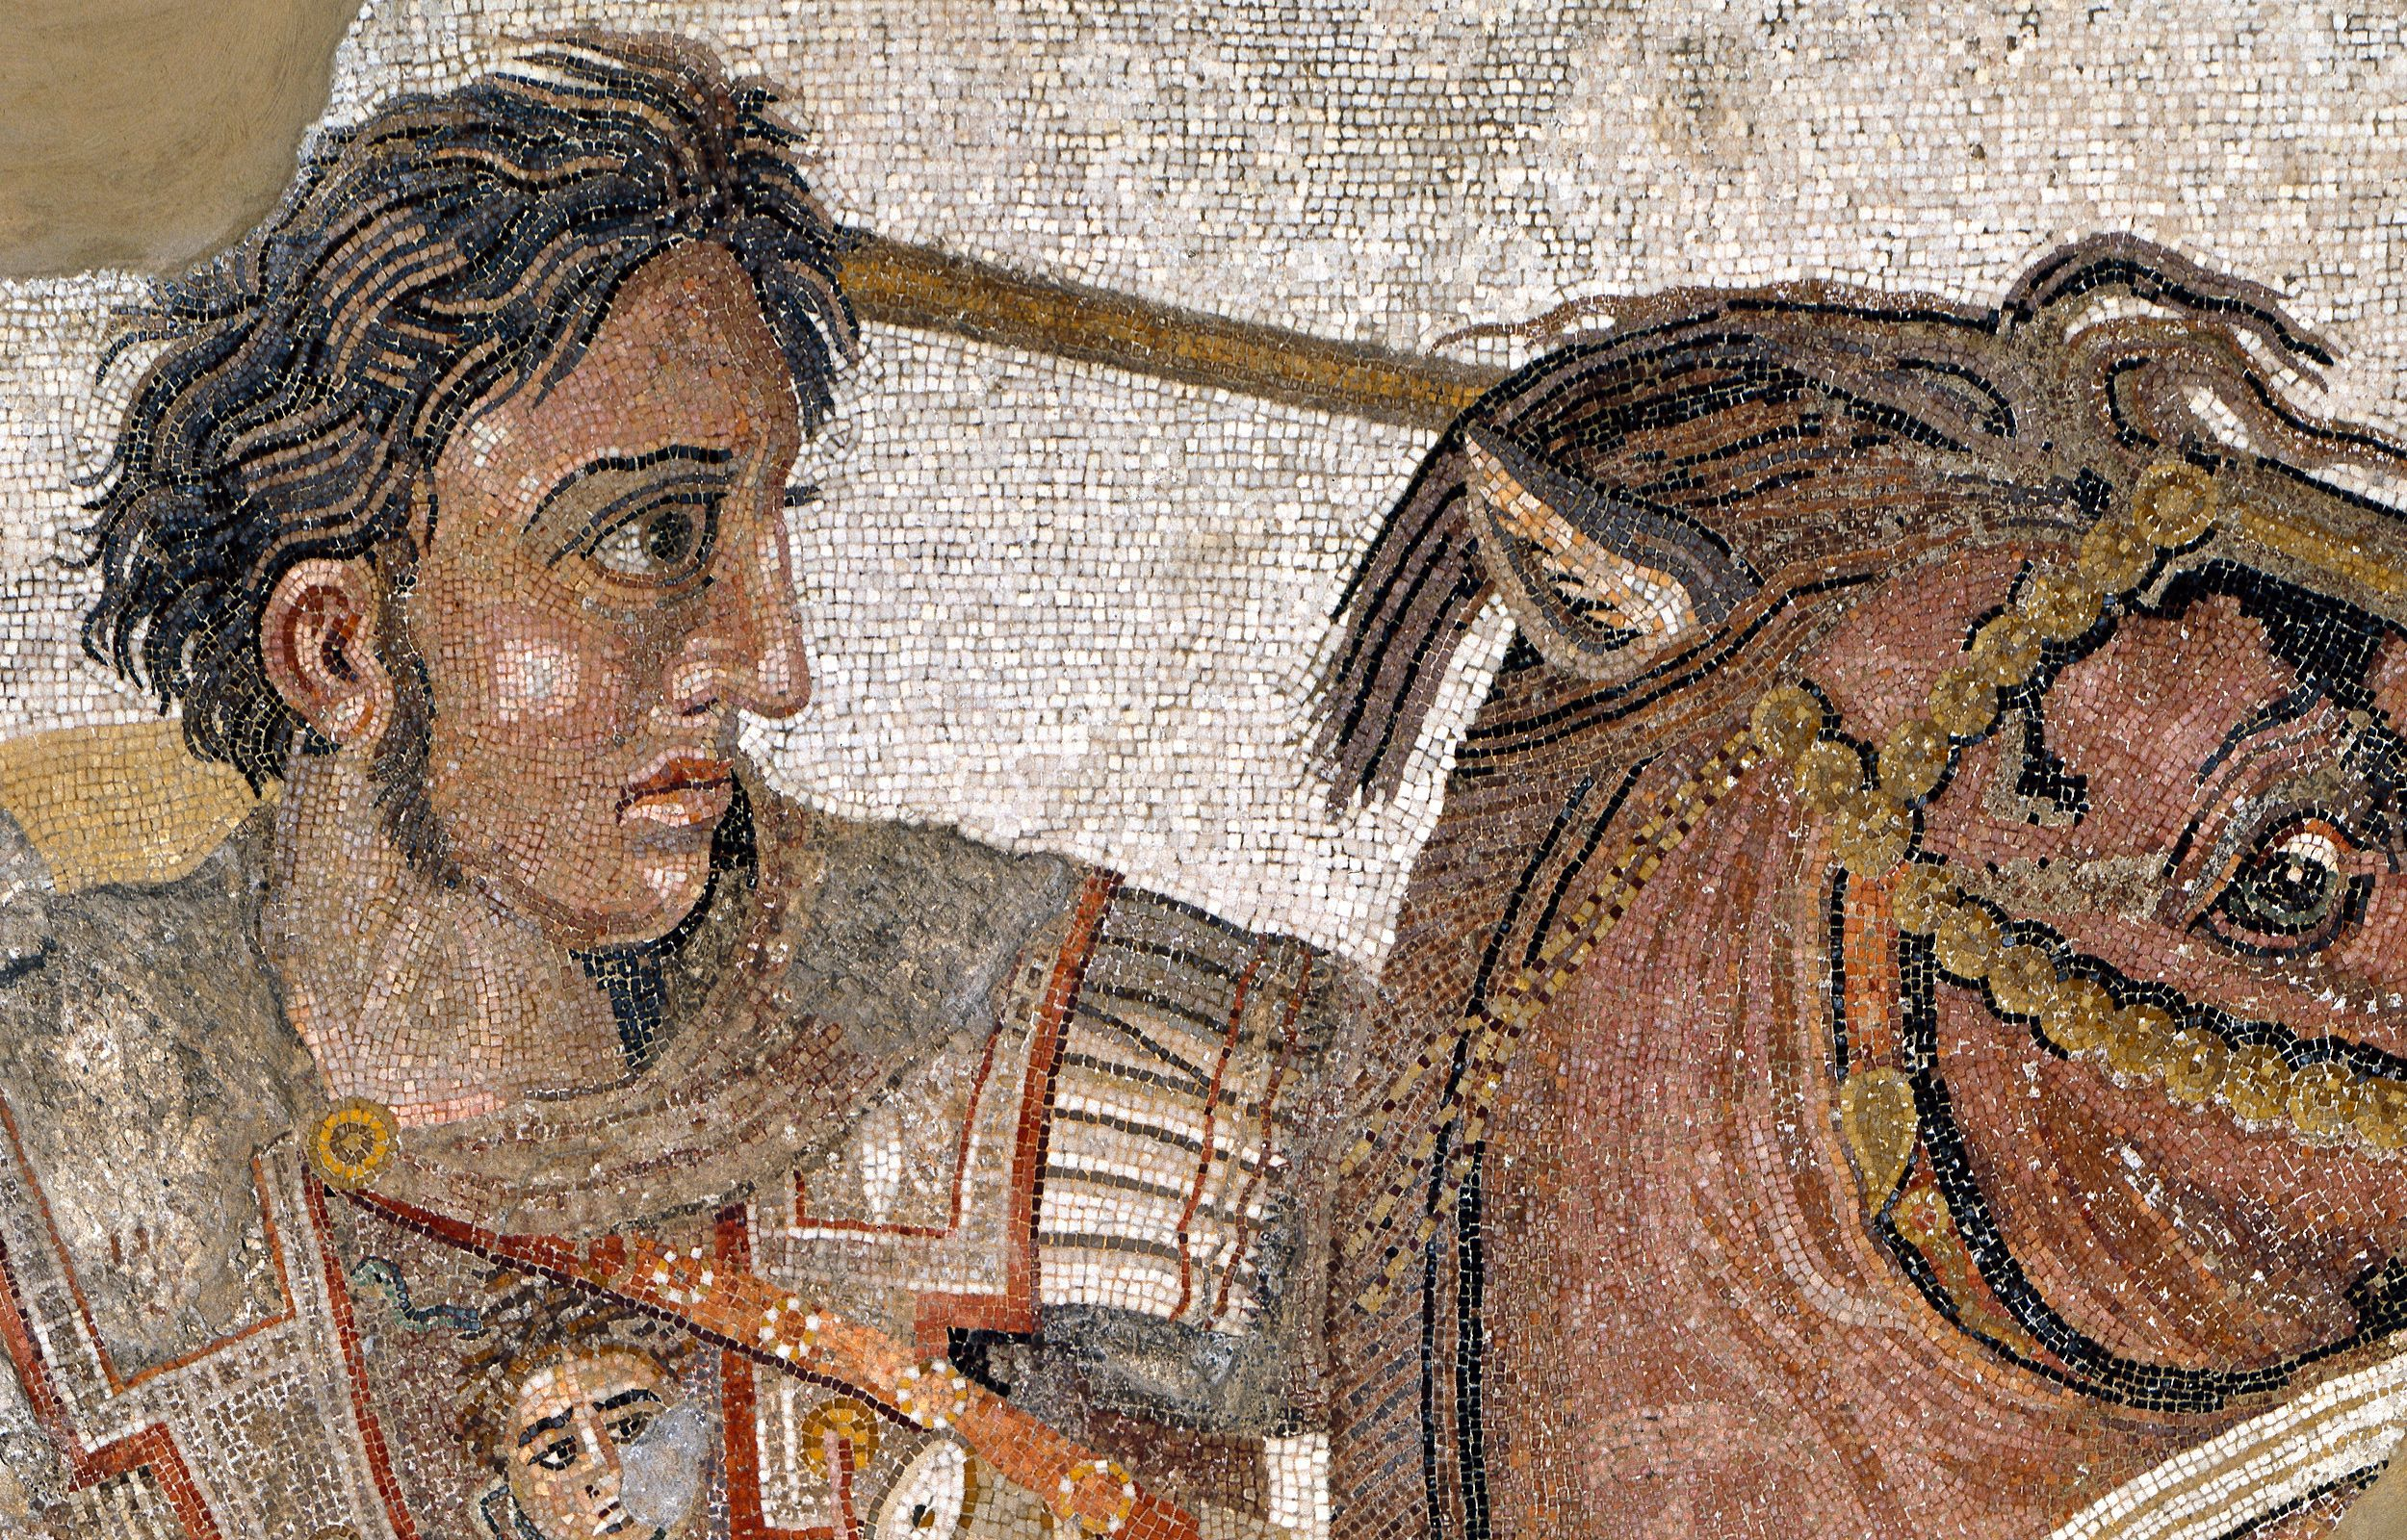 10 Greatest Ancient Military Leaders